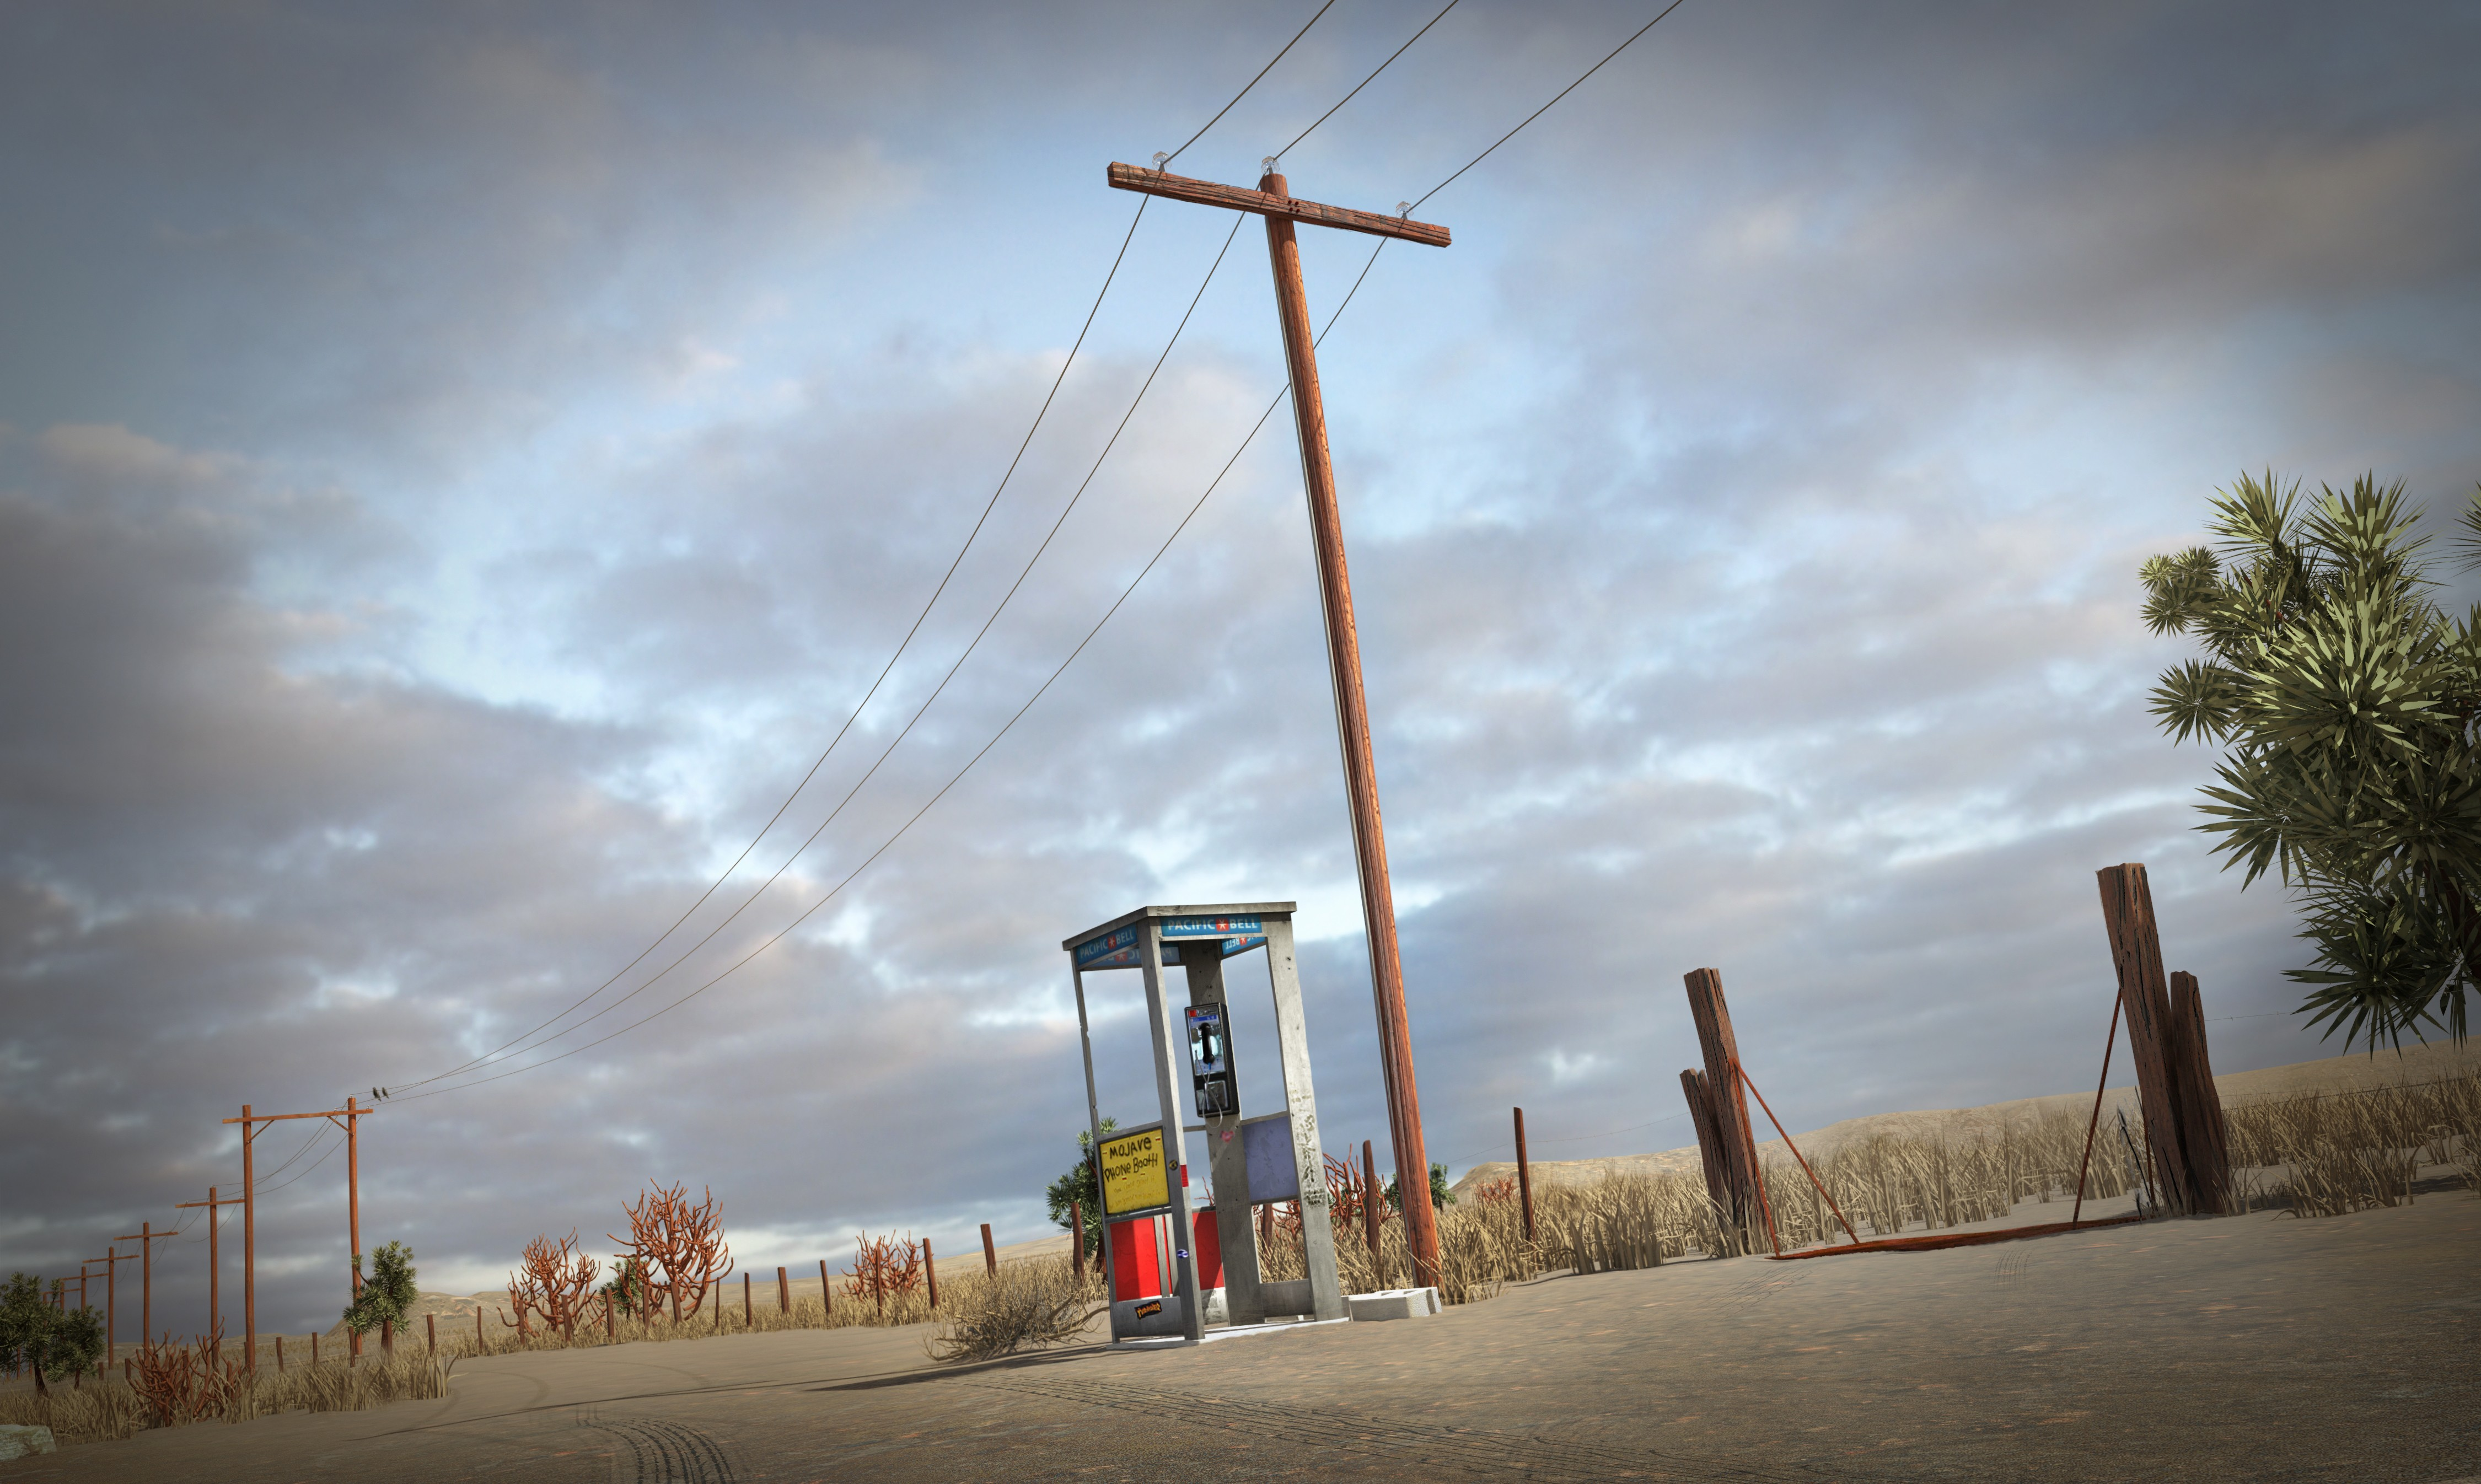 Mojave Phone Booth sitting in the middle of the desert